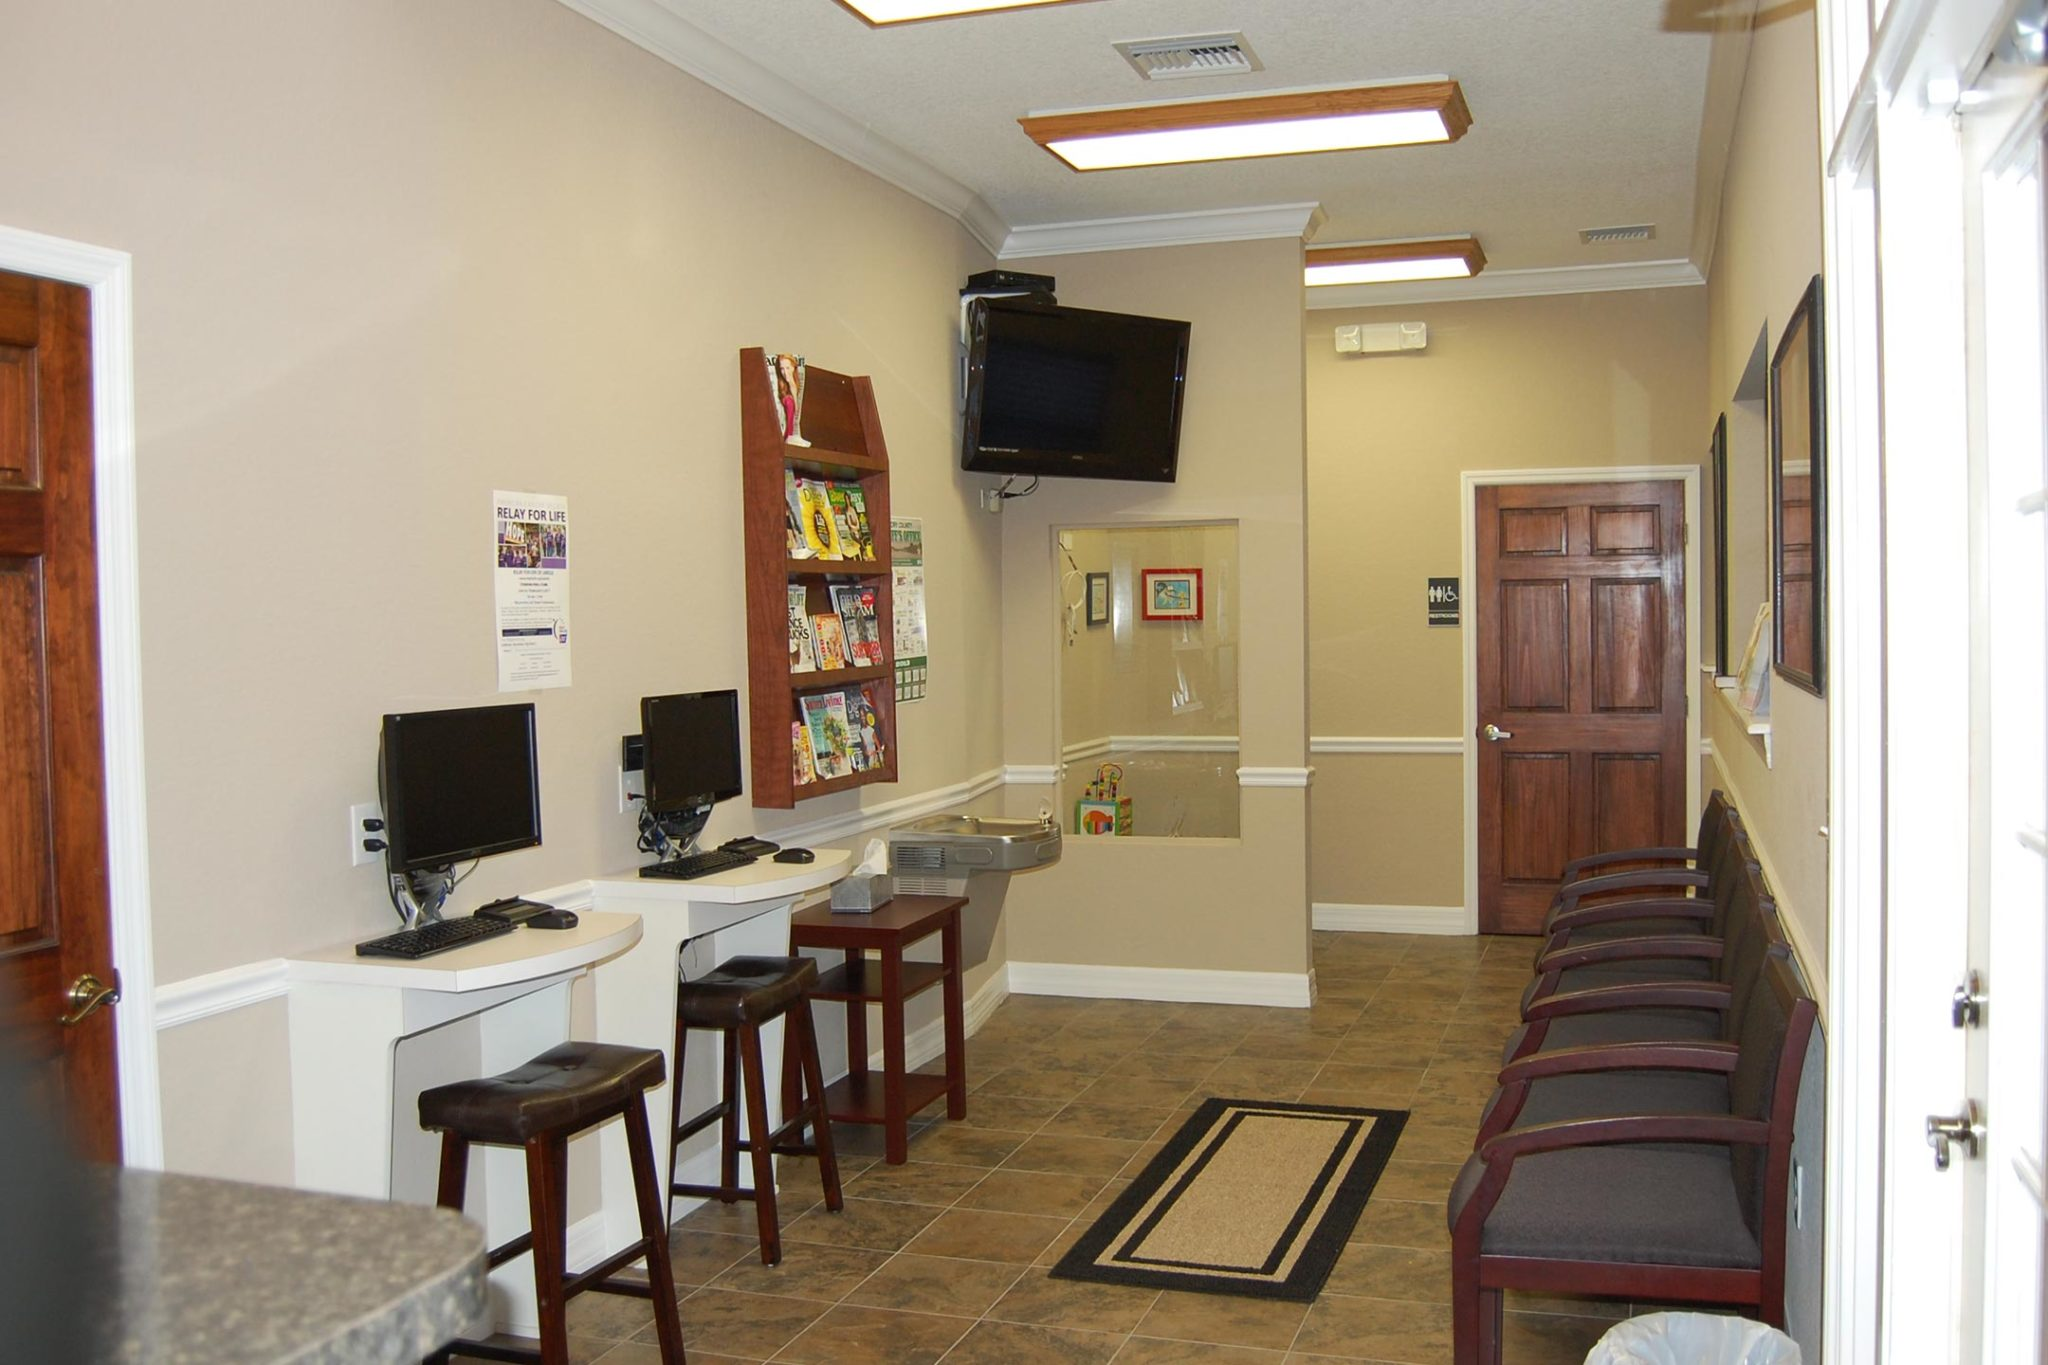 LaBelle Dental Office